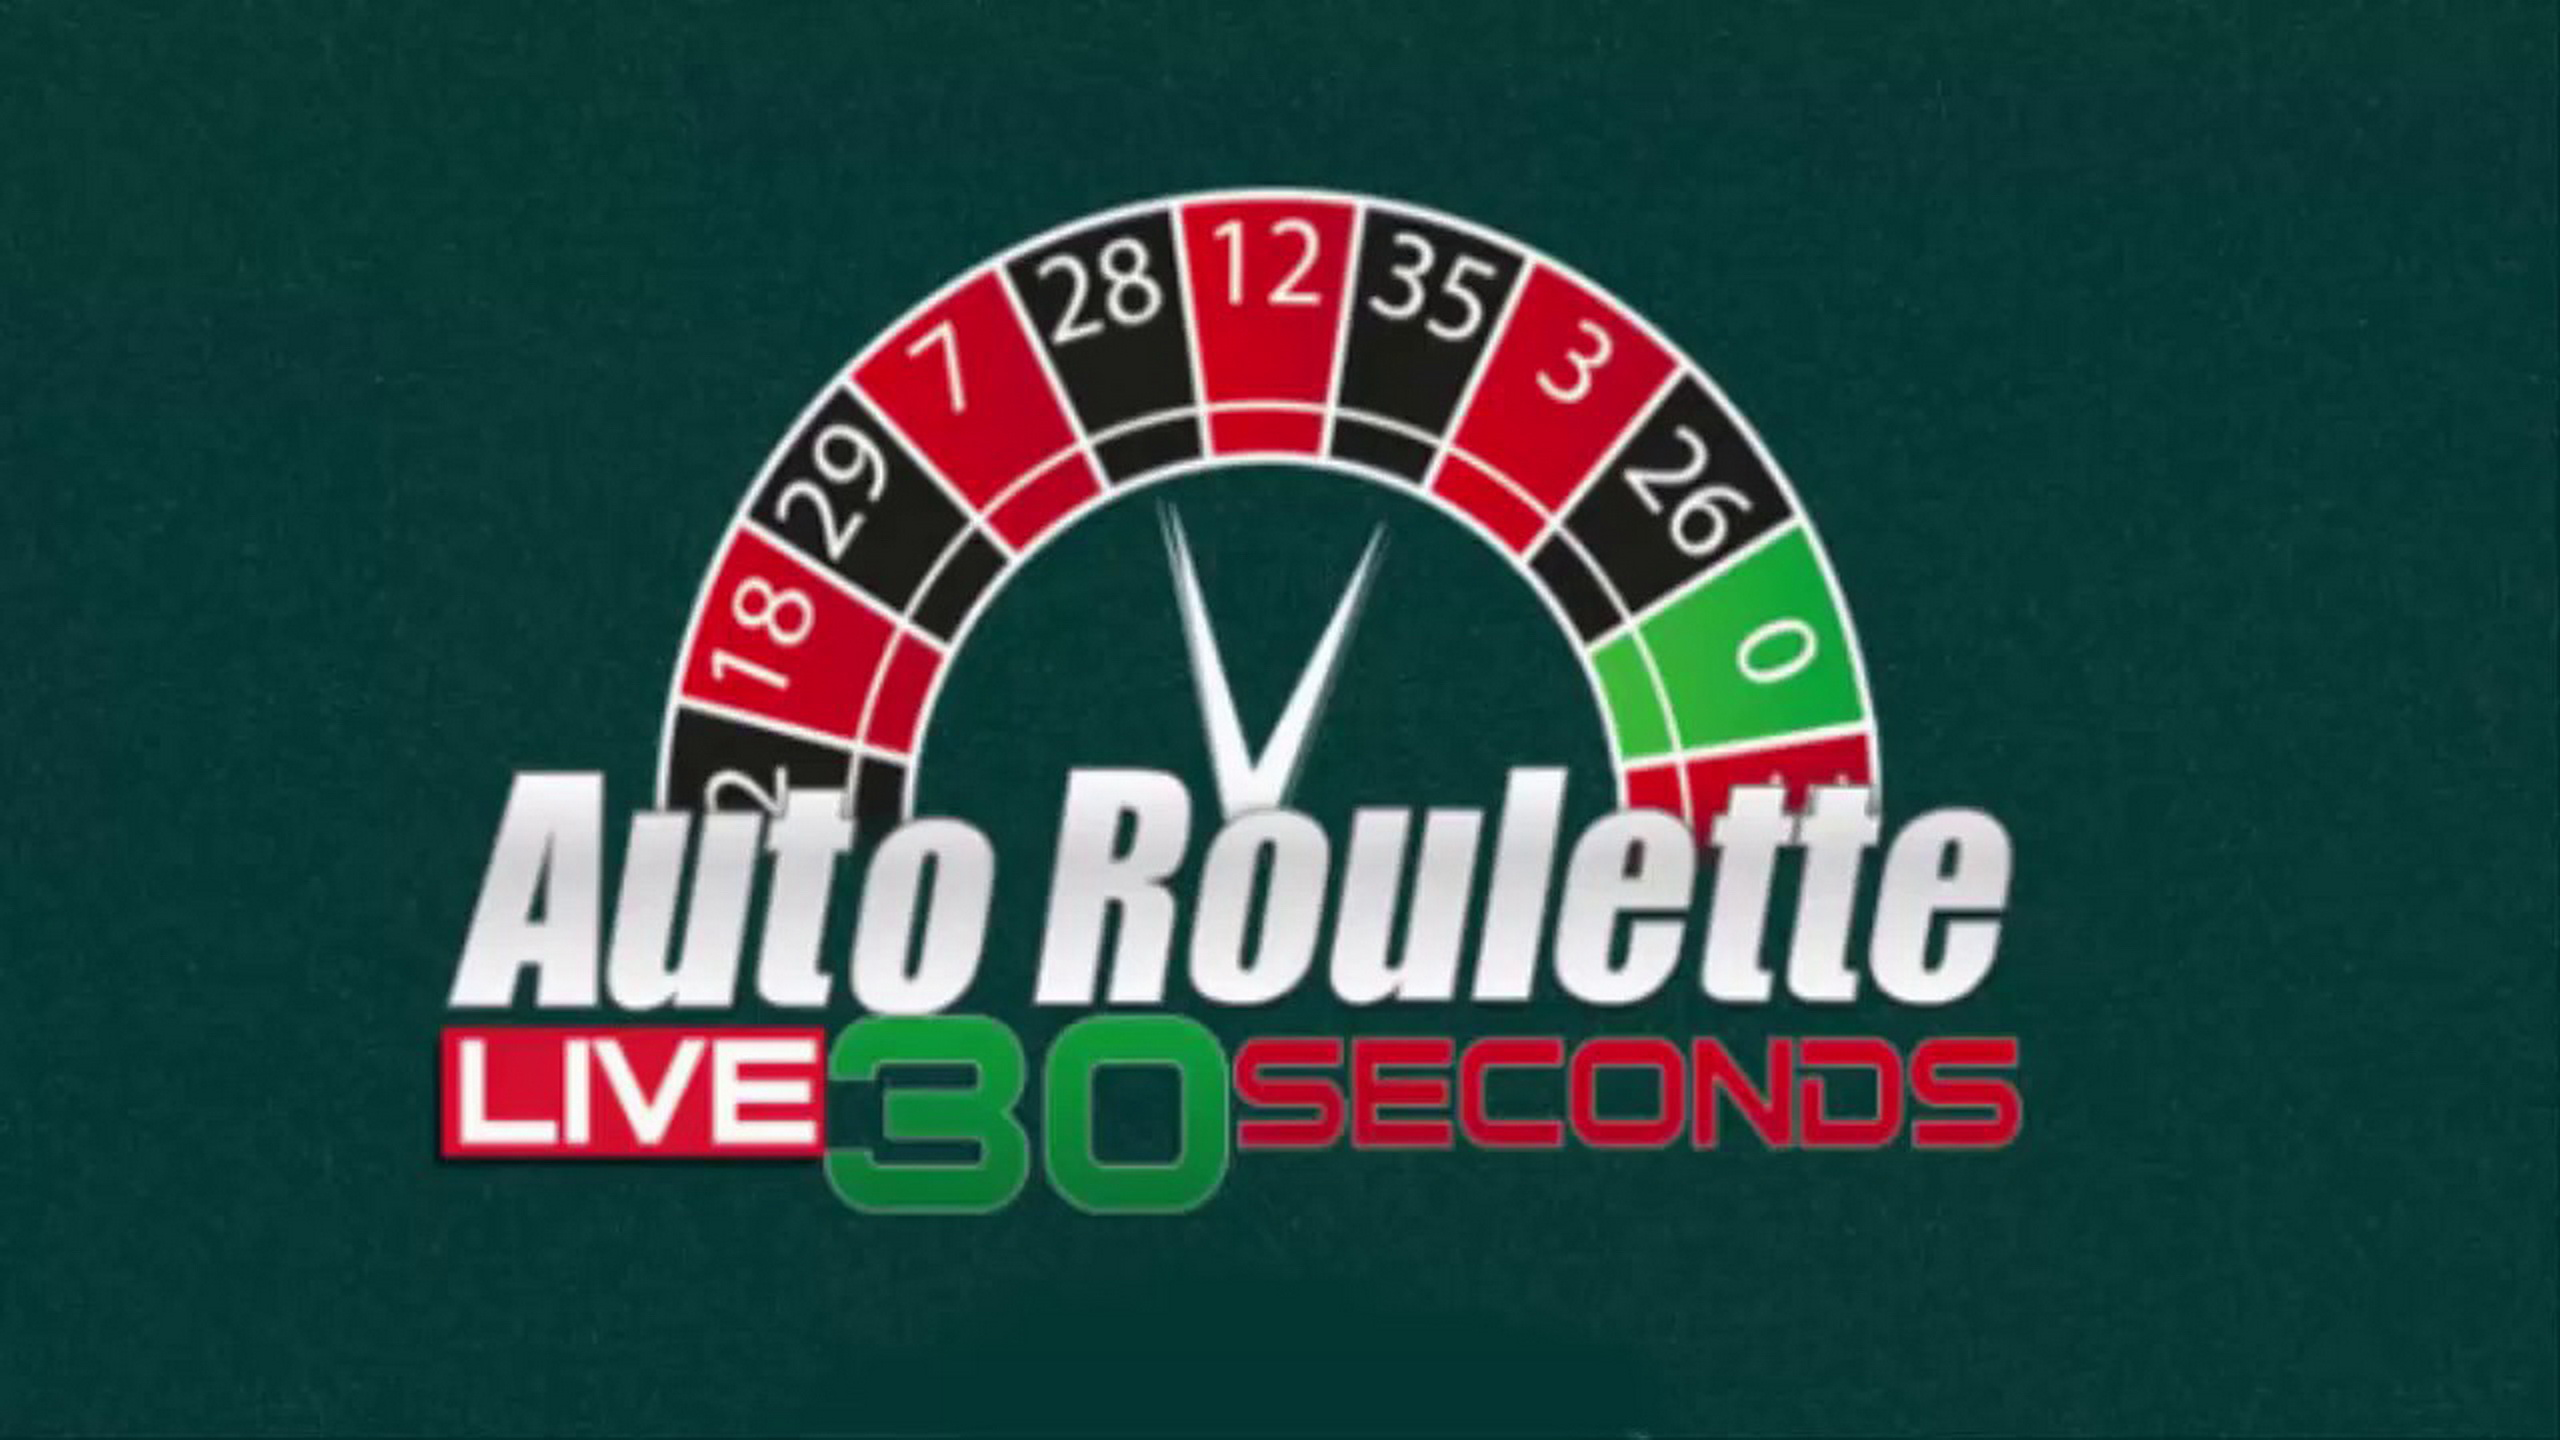 Auto Roulette Live 30 Seconds Online Slot Demo Game by Authentic Gaming